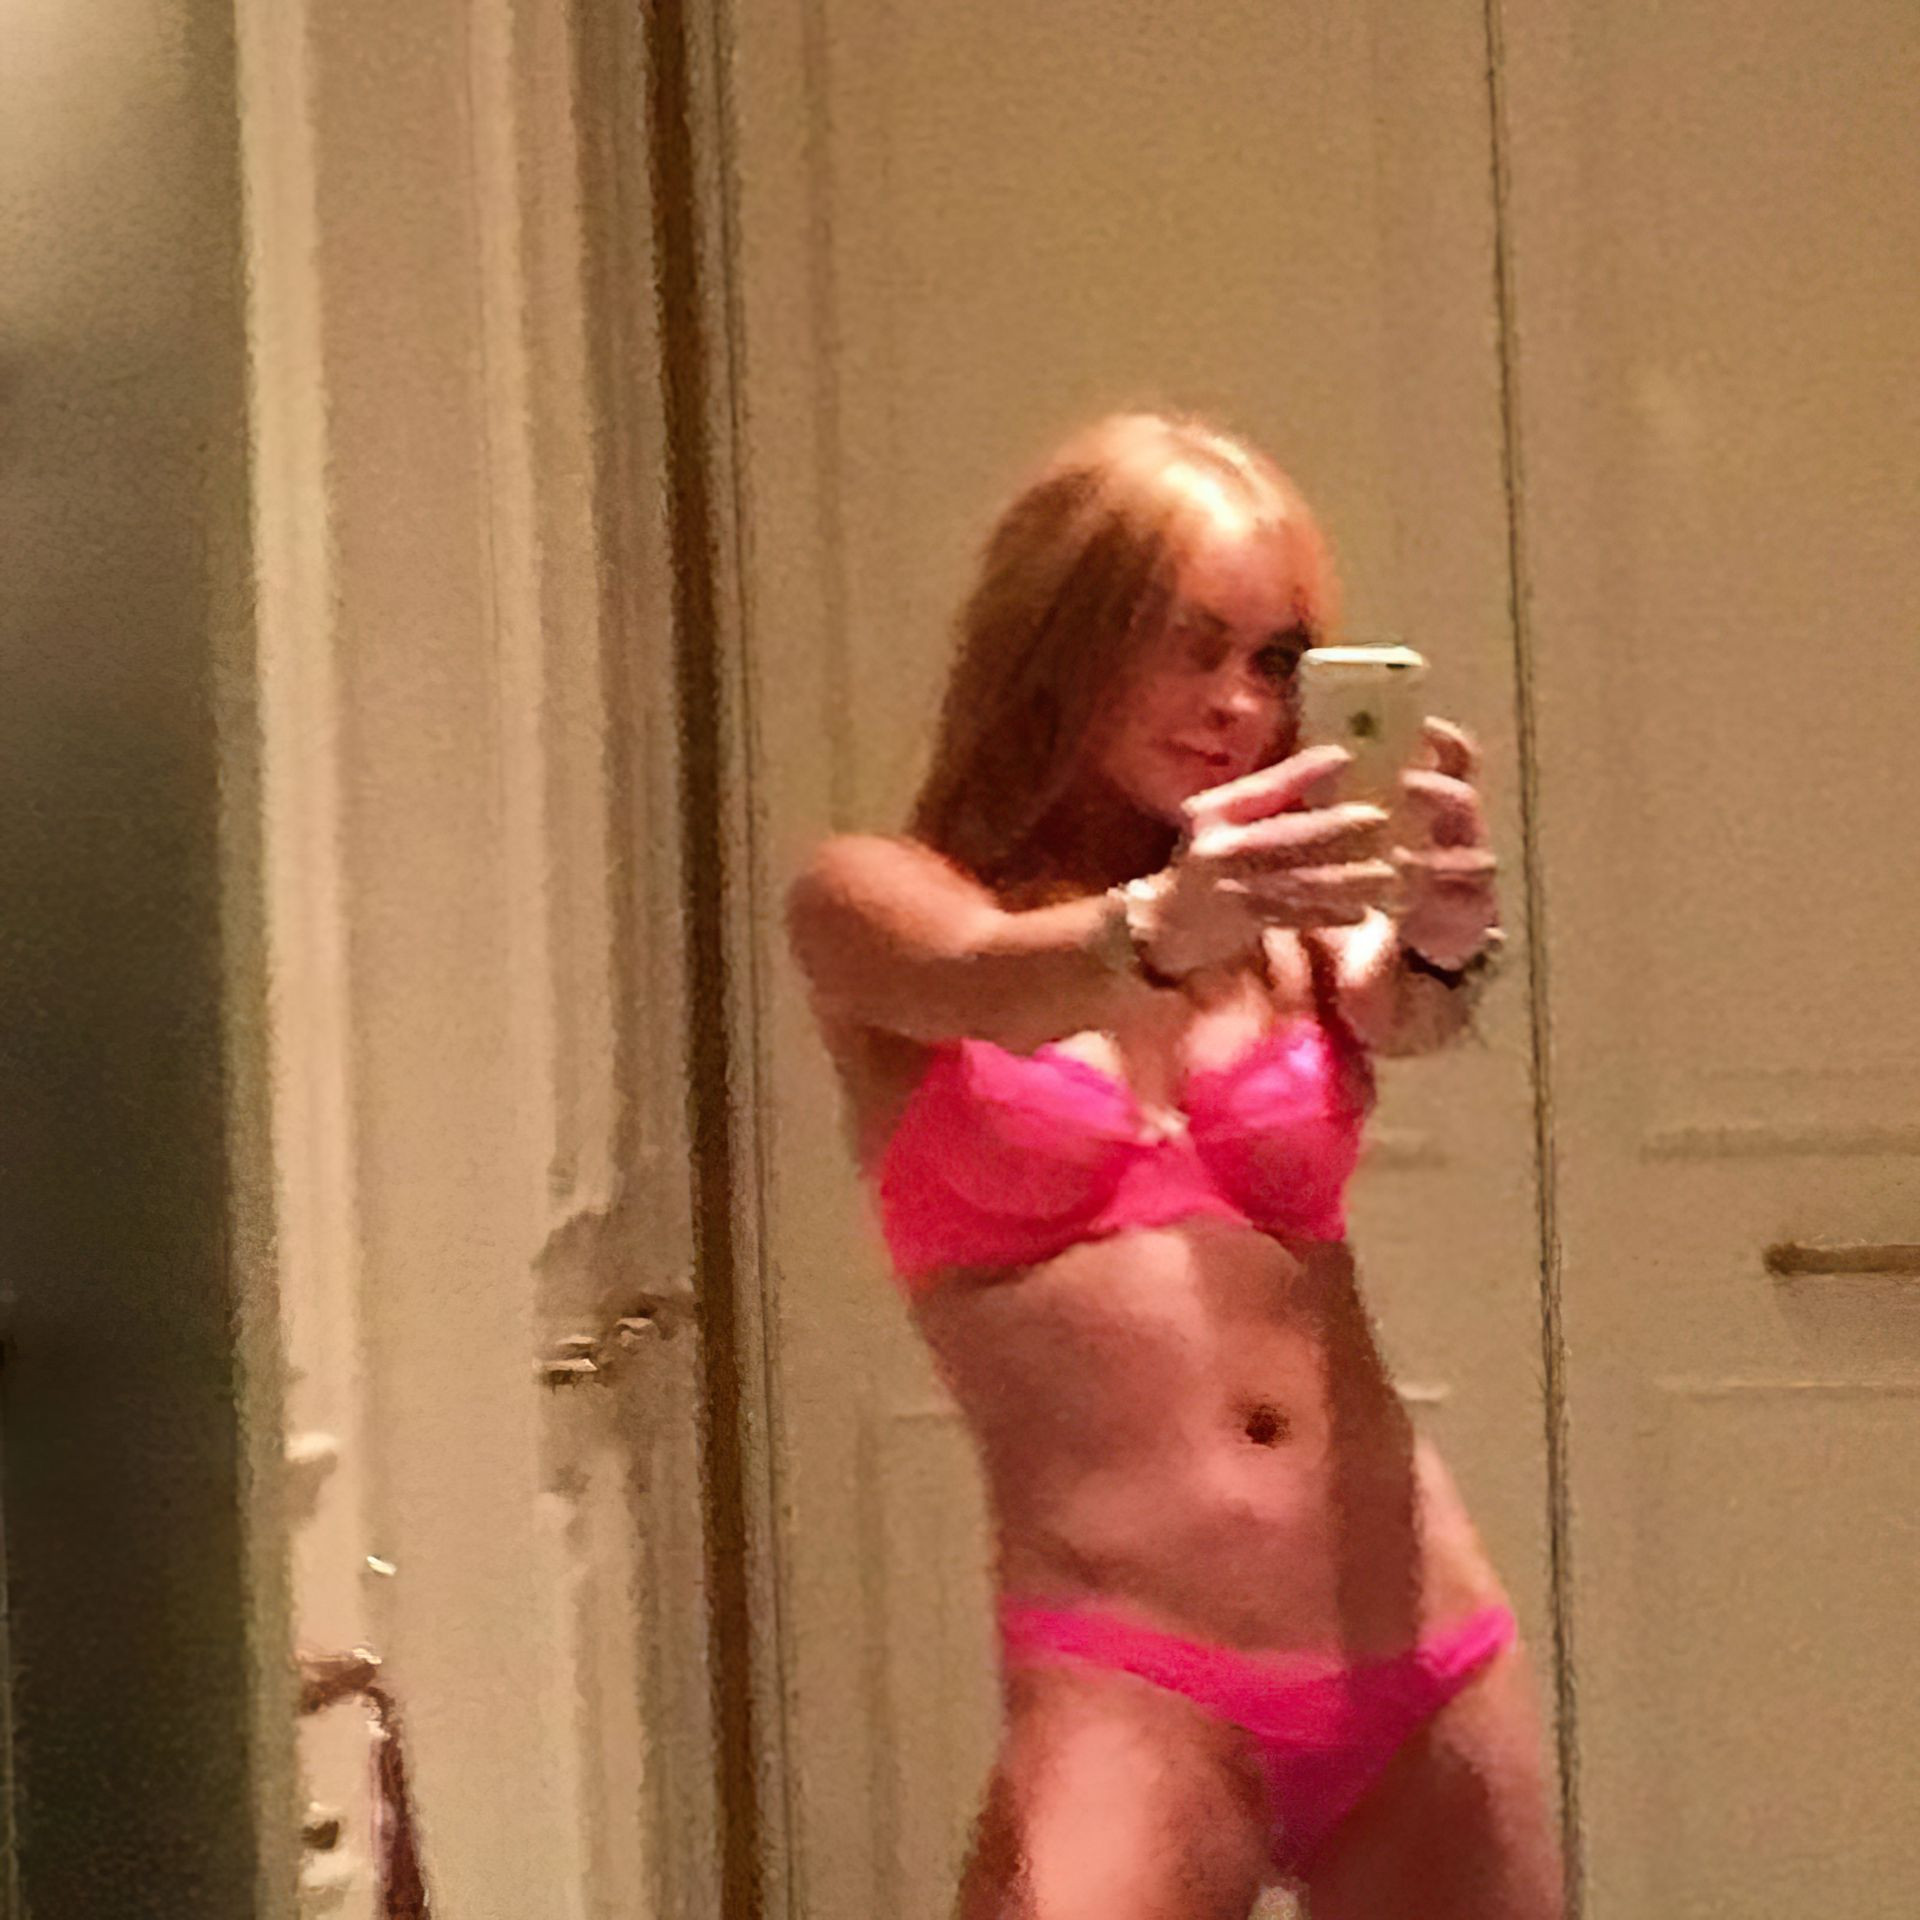 Lindsay Lohan Sexy Leaked The Fappening fappenings.com 4